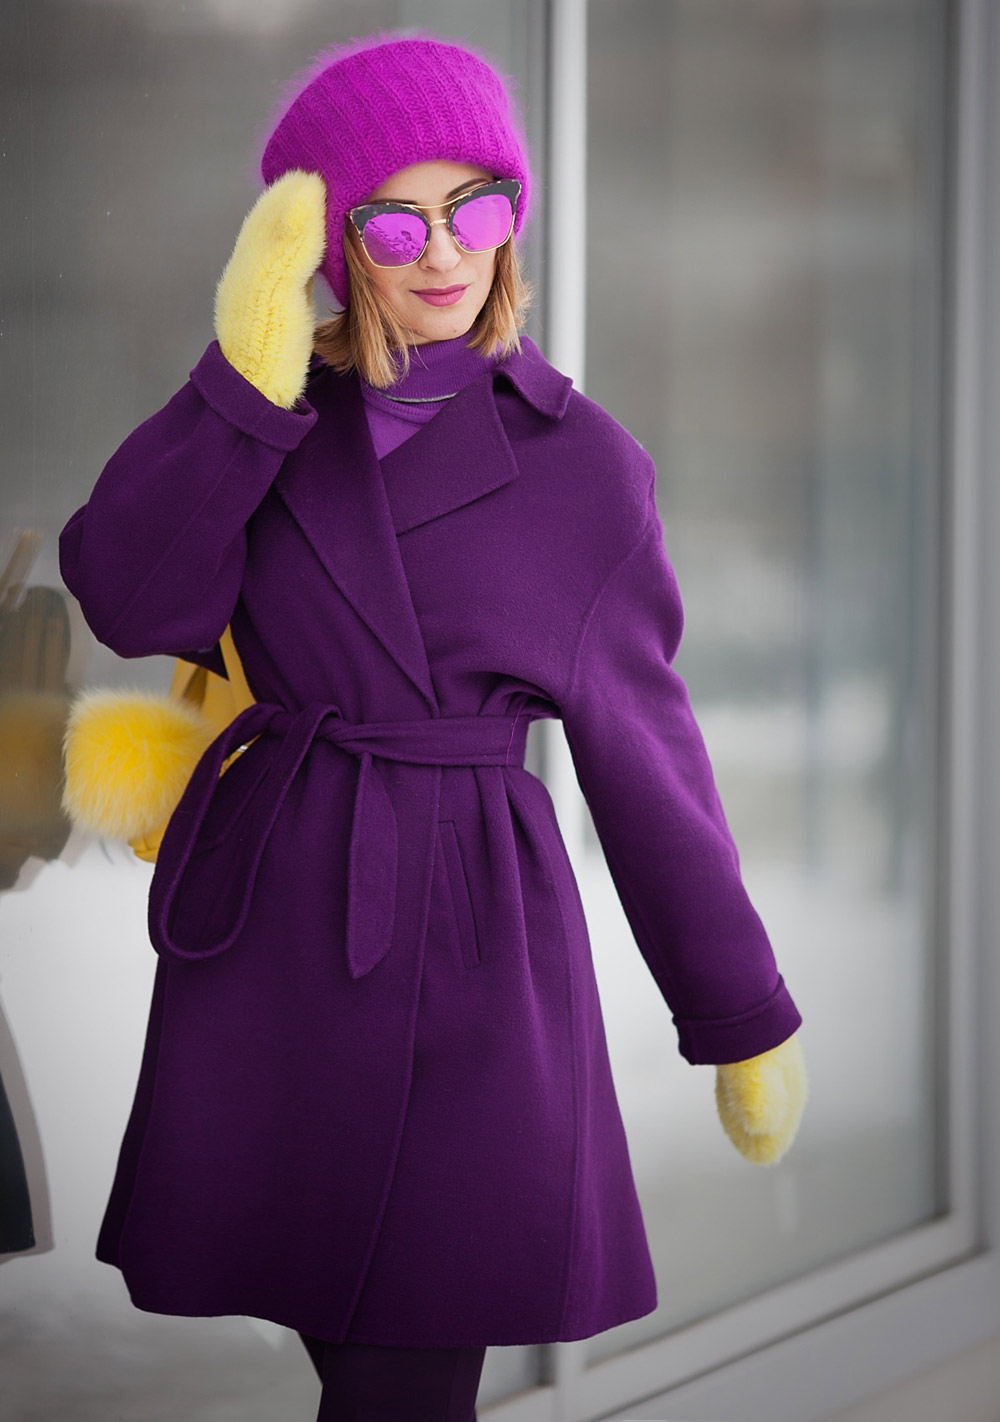 max mara purple wool coat, gentle monster sunglasses,